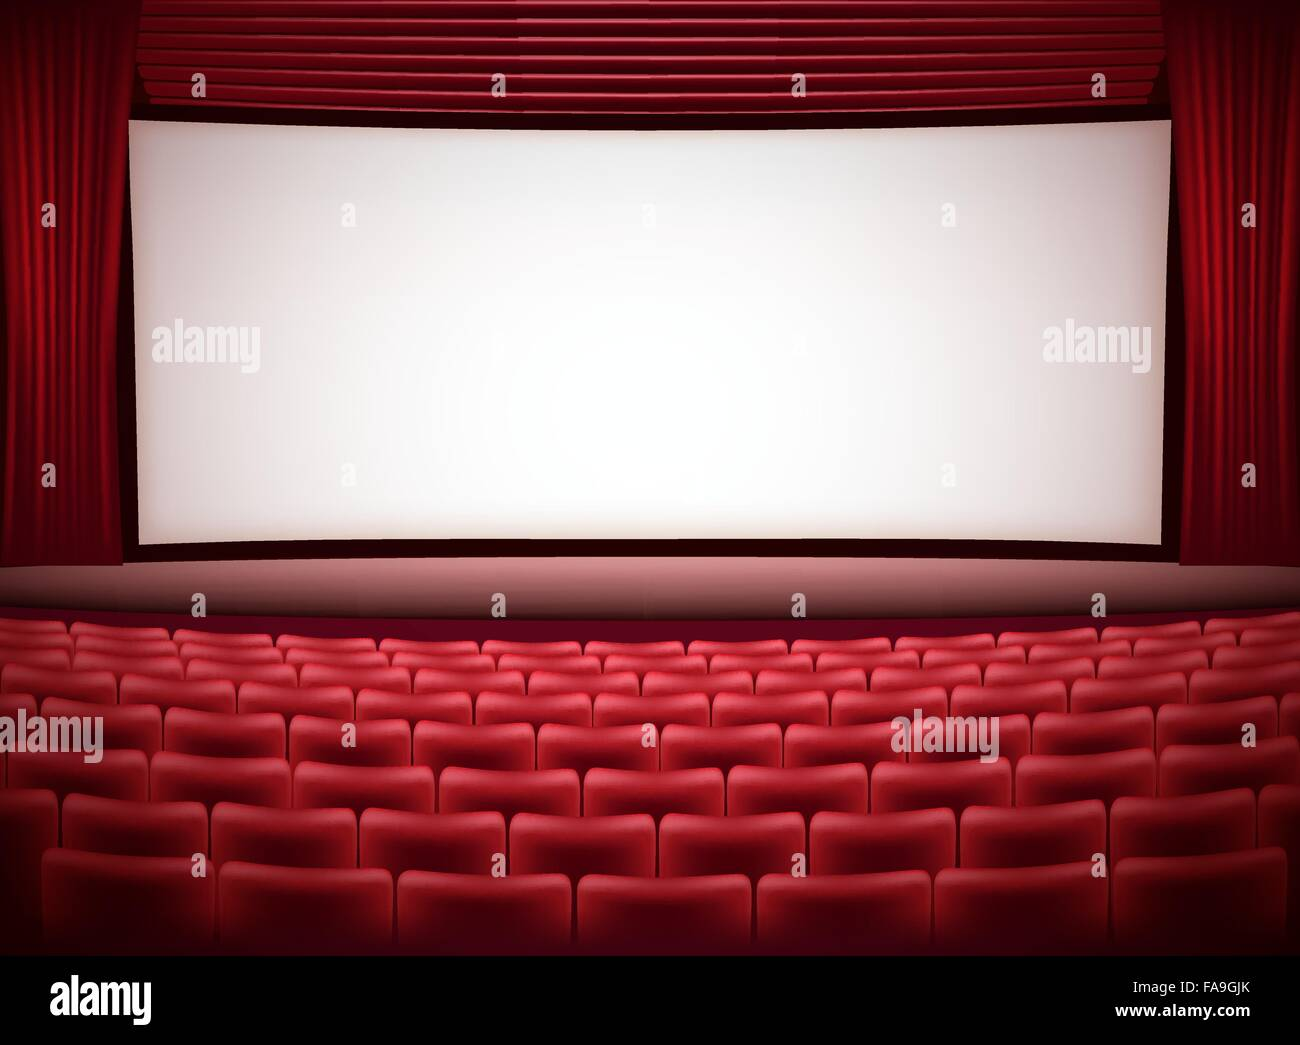 cinema theater horizontal background with red seats and red curtains - Stock Vector